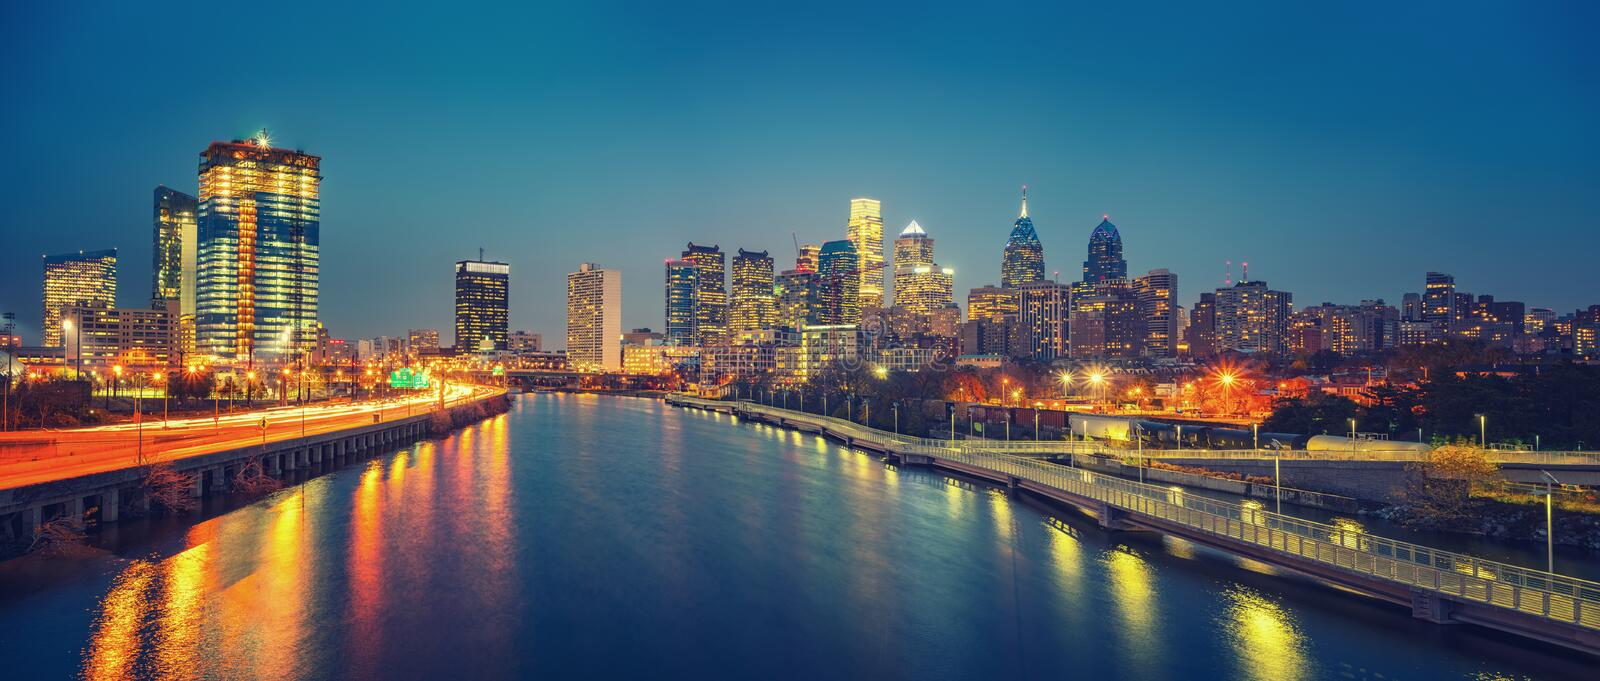 Philadelphia skyline and Schuylkill river at night, USA. Panoramic picture of Philadelphia skyline and Schuylkill river at night, PA, USA stock photo